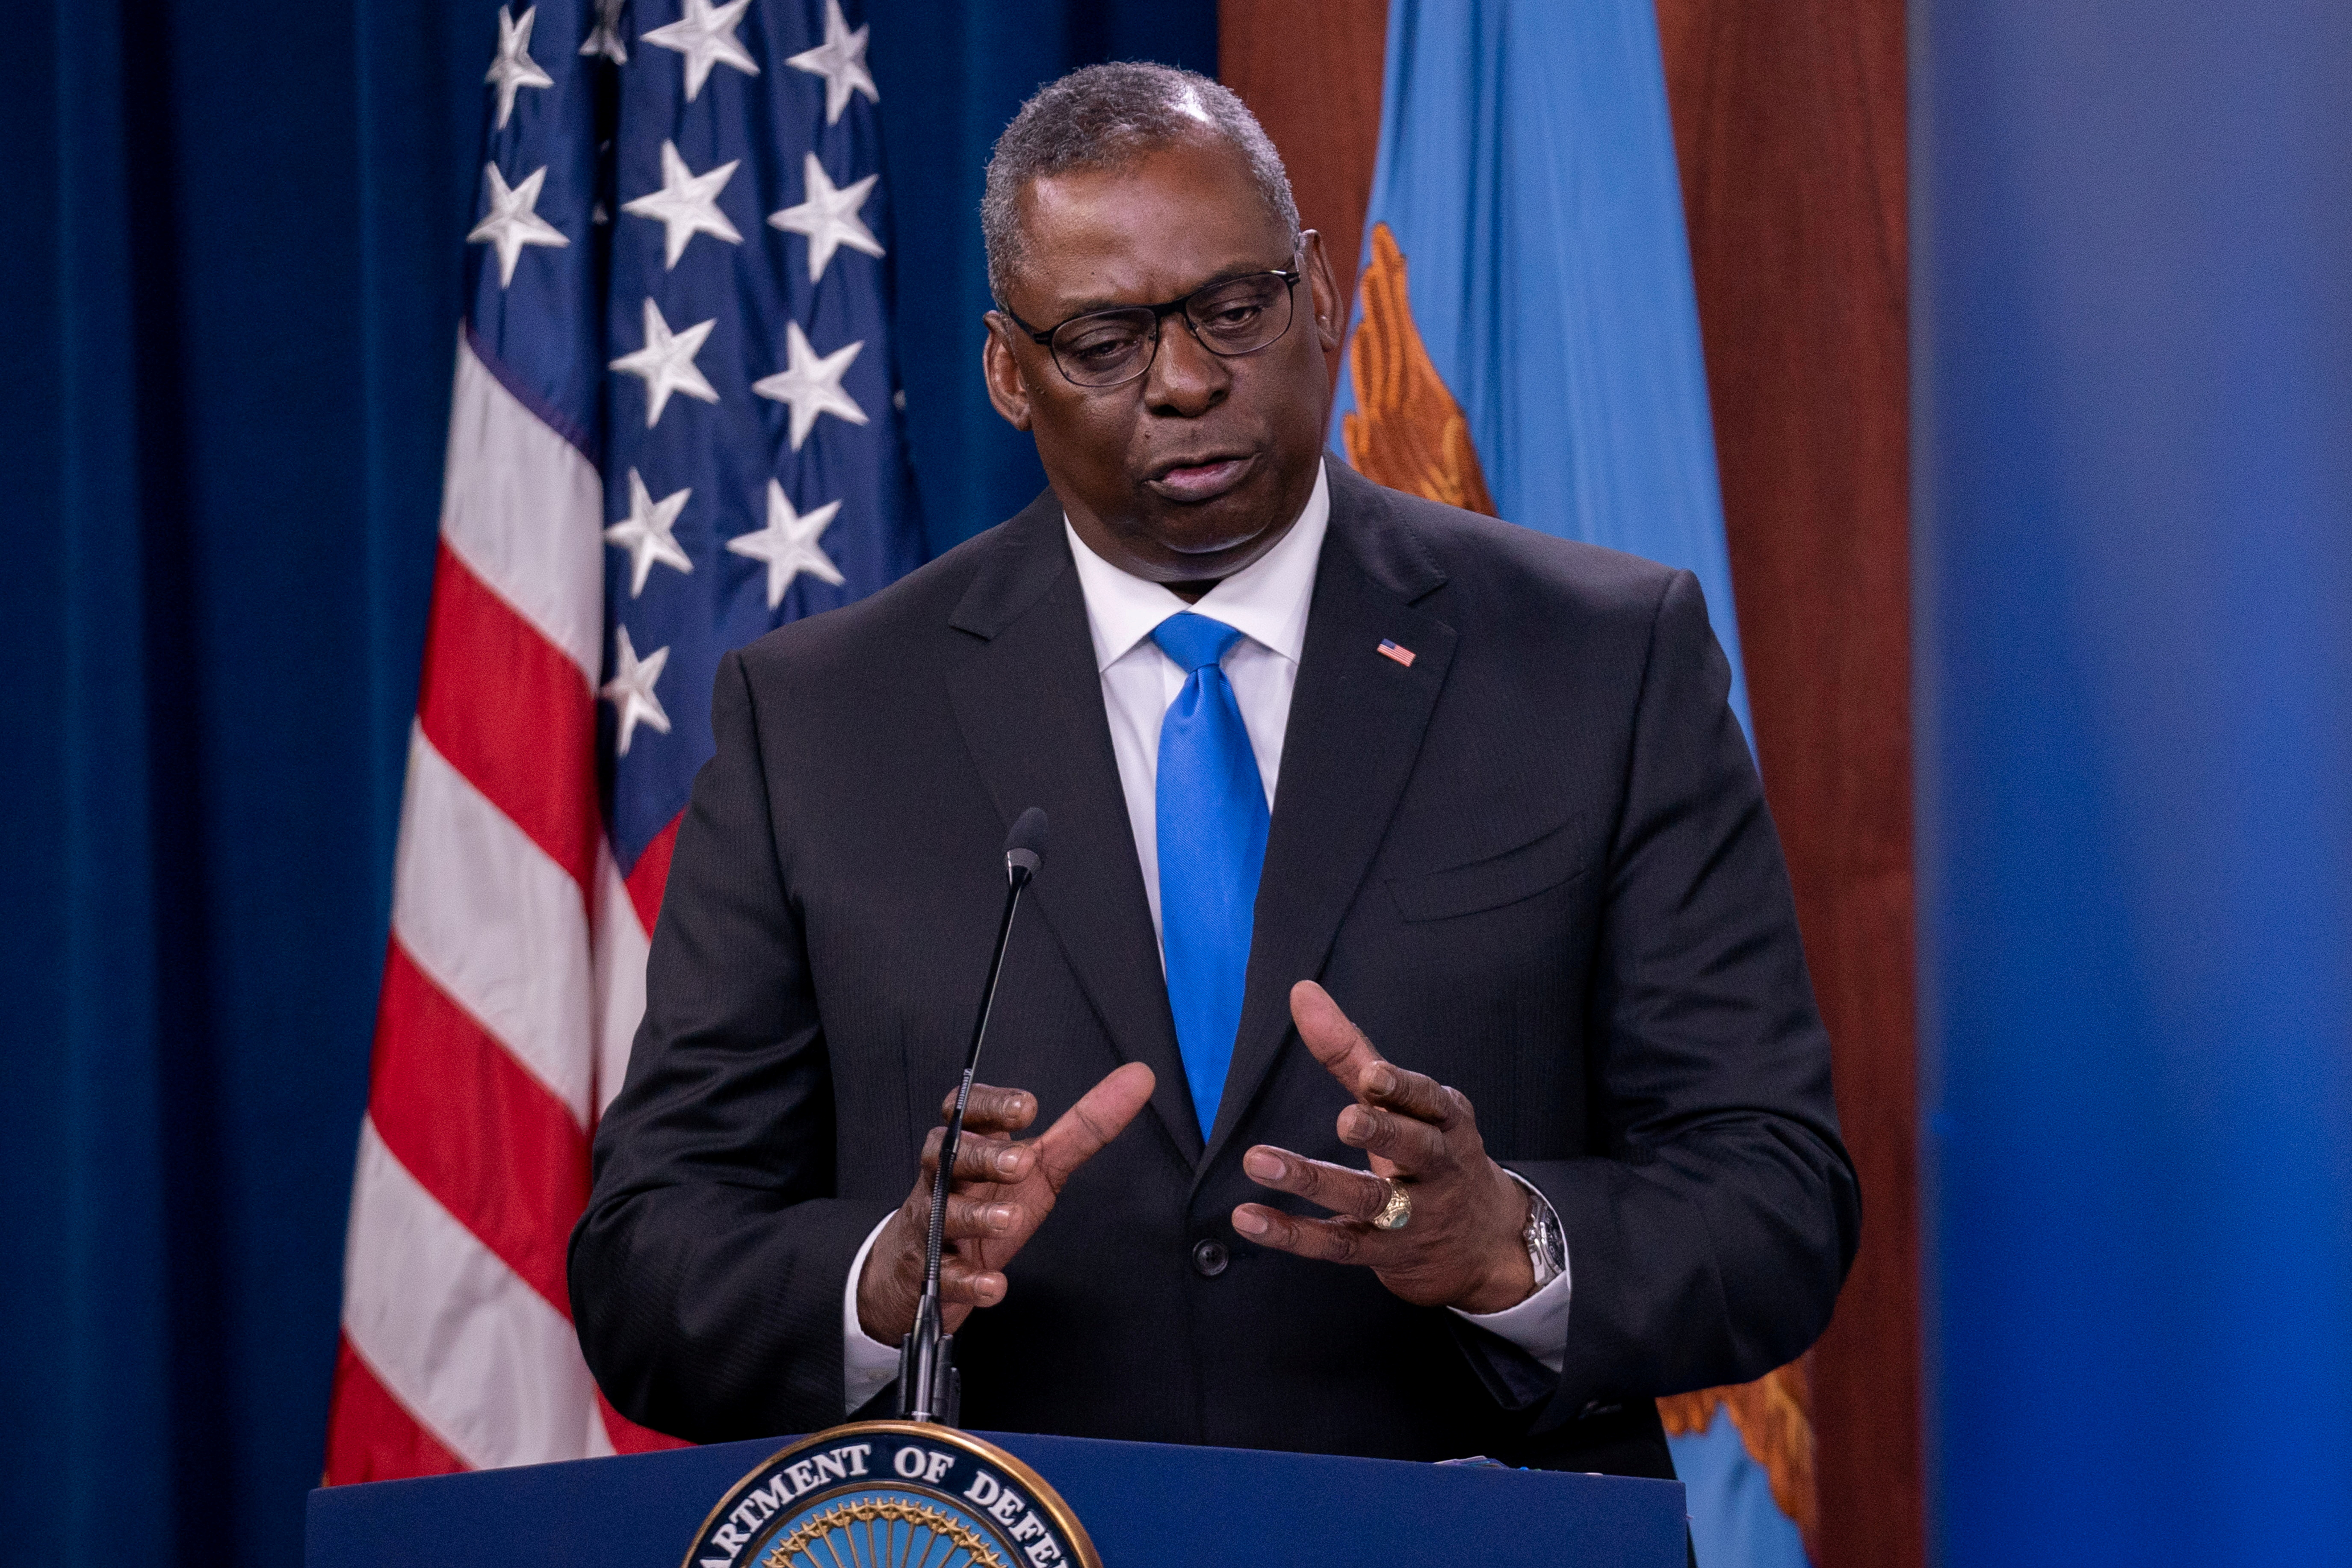 U.S. Defense Secretary Lloyd Austin answers reporters questions at the Pentagon as the U.S. military nears the formal end of its mission in Afghanistan in Arlington, Virginia, U.S. July 21, 2021. REUTERS/Ken Cedeno